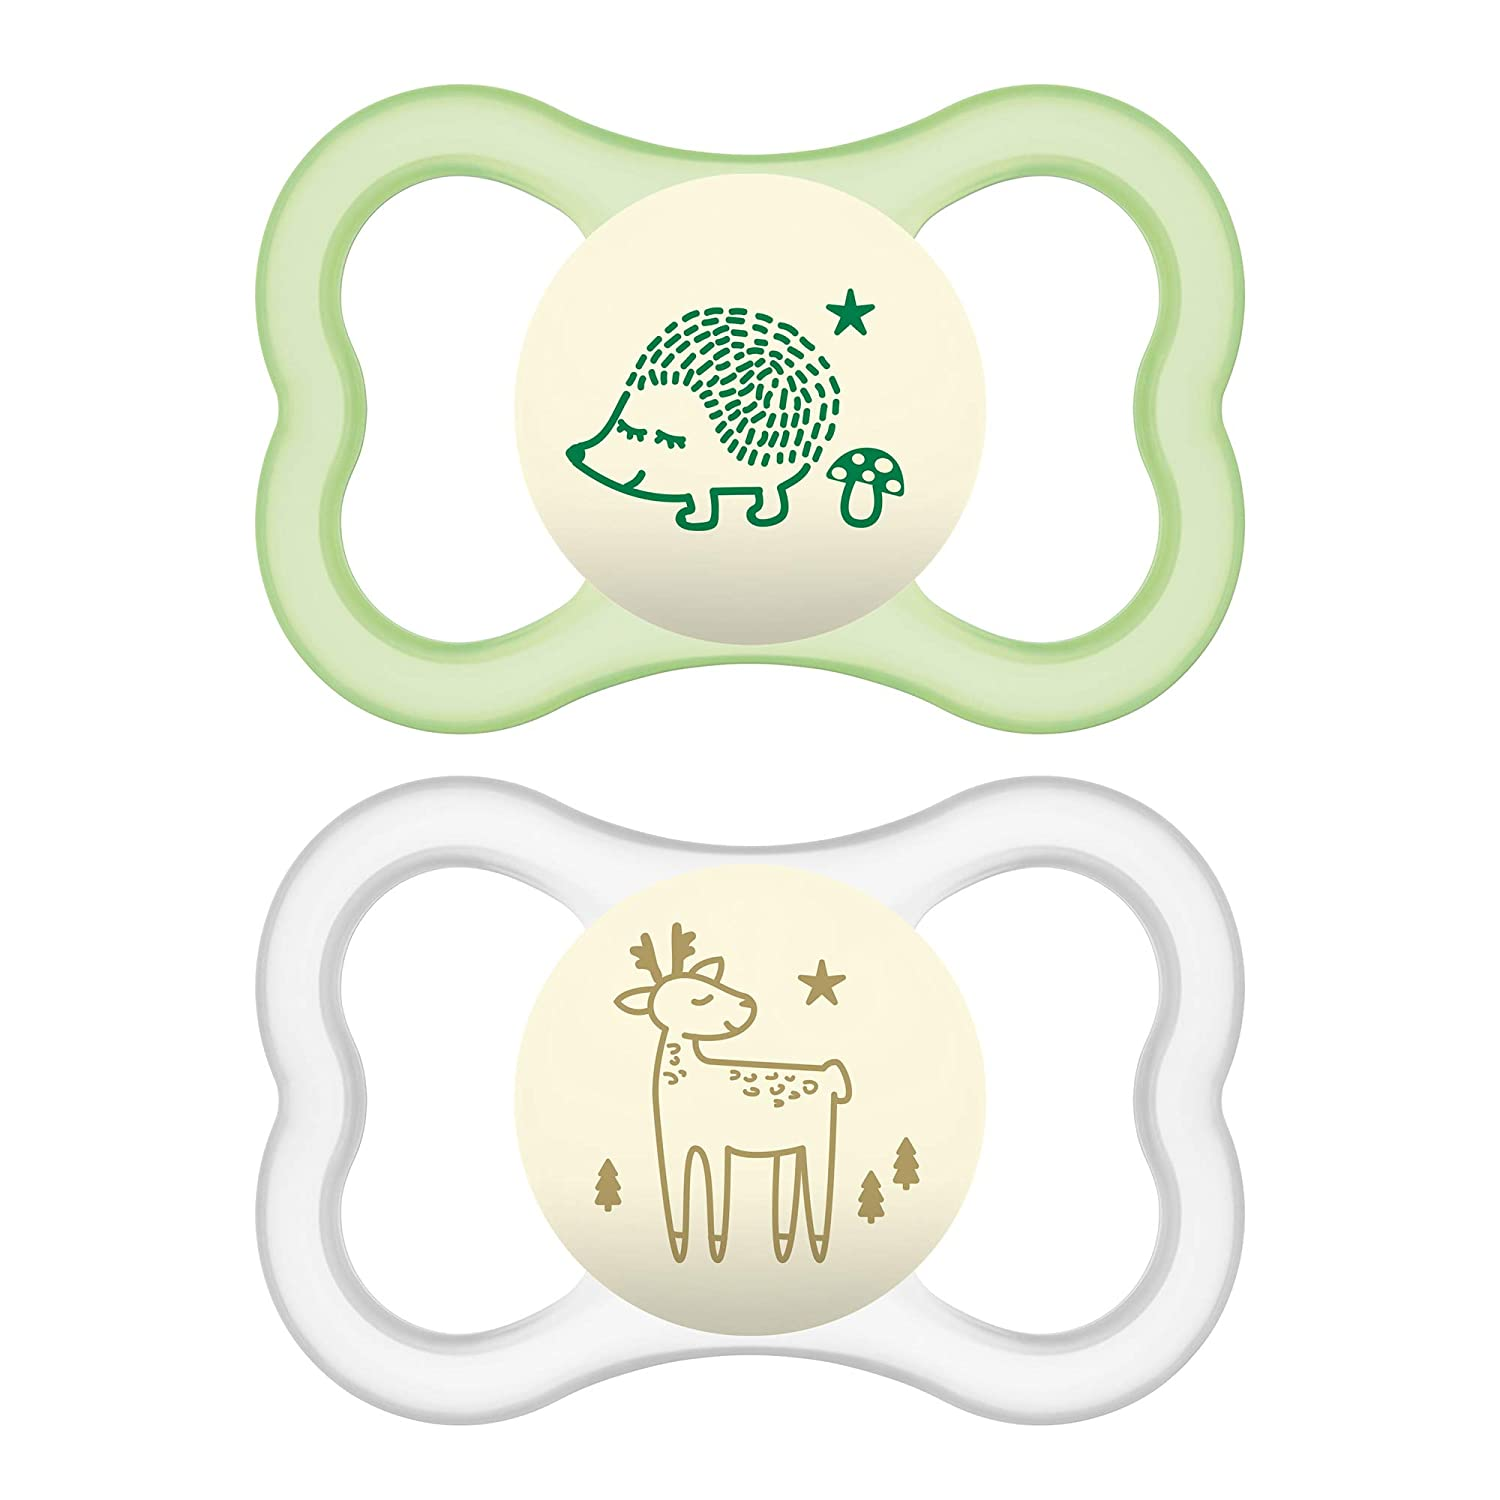 MAM Glow In the Dark Sensitive Skin Pacifiers, Baby Pacifier 6+ Months, Best Pacifier for Breastfed Babies, Air Night Design Collection, Unisex, ...